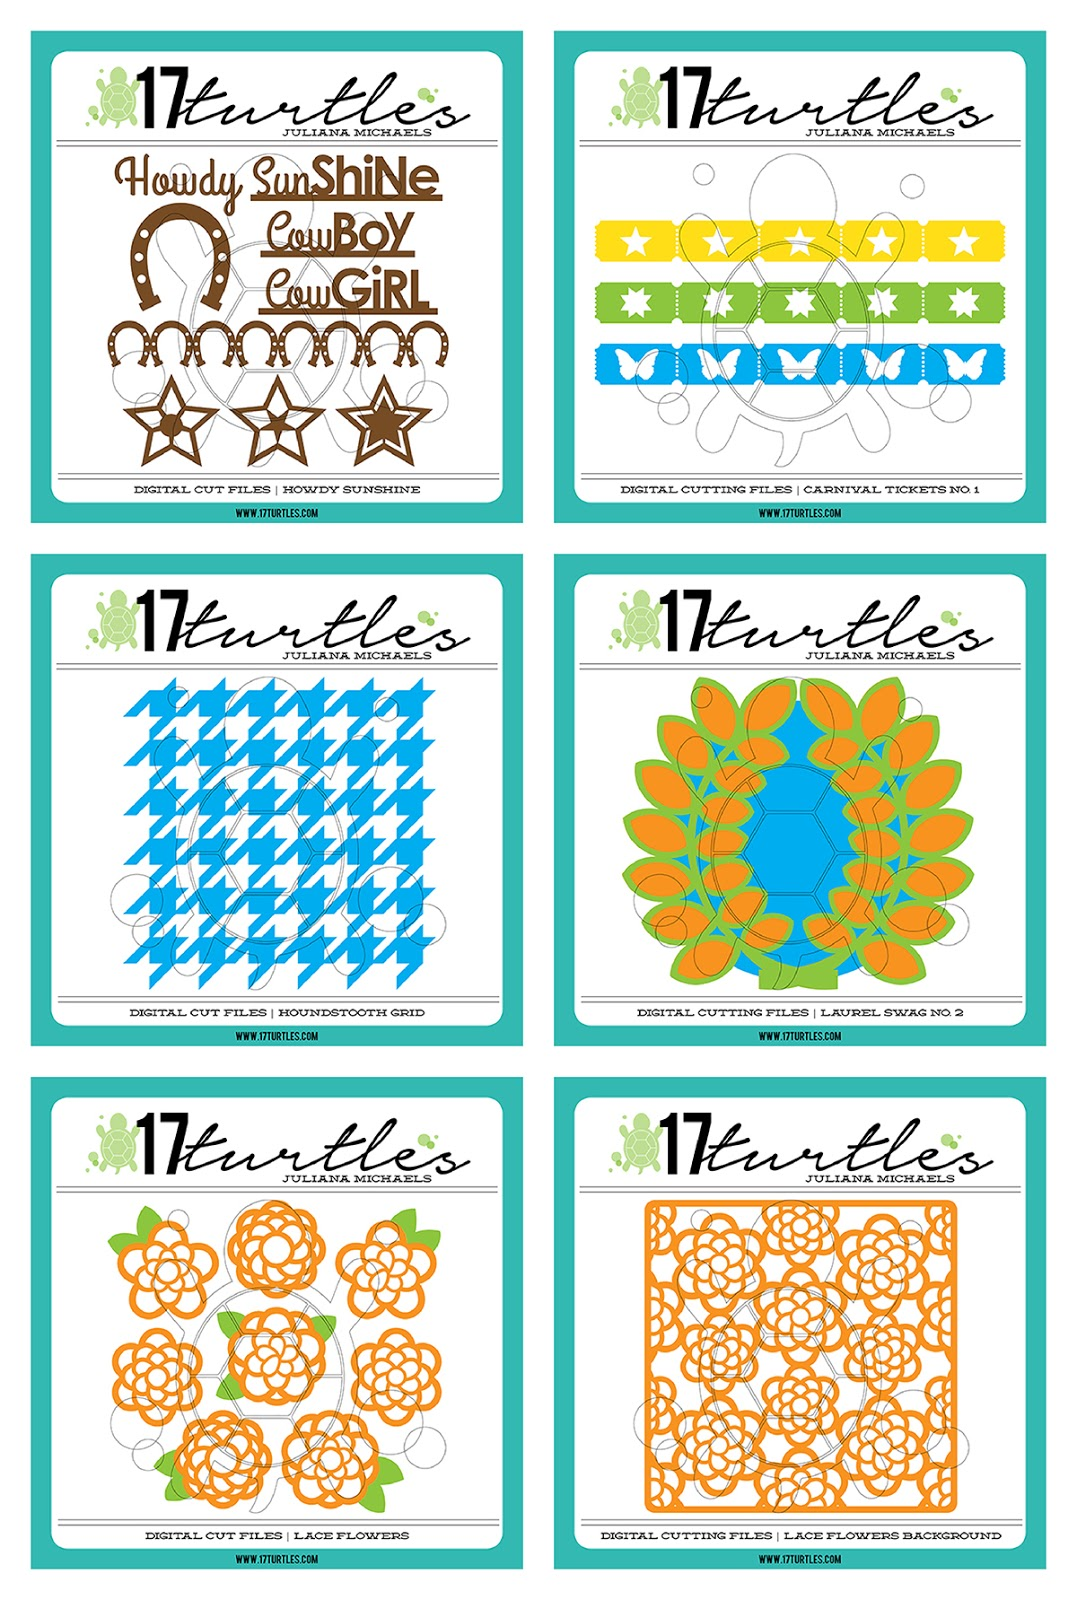 New Digital Cut Files by Juliana Michaels 17turtles Esty Shop